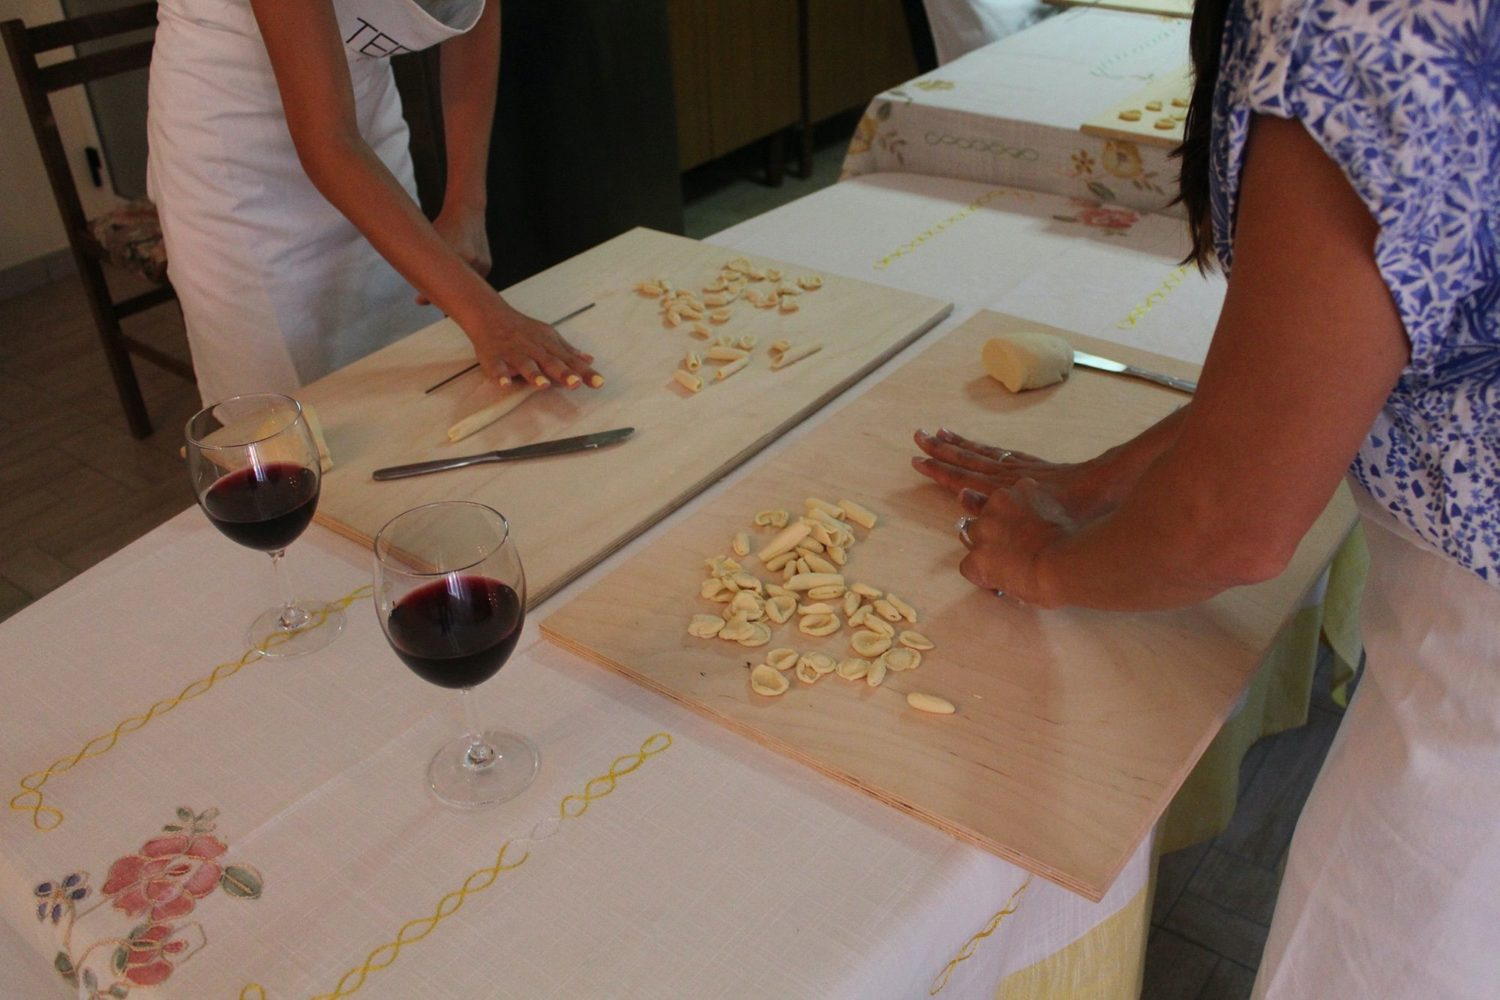 Orecchiette dough preparation